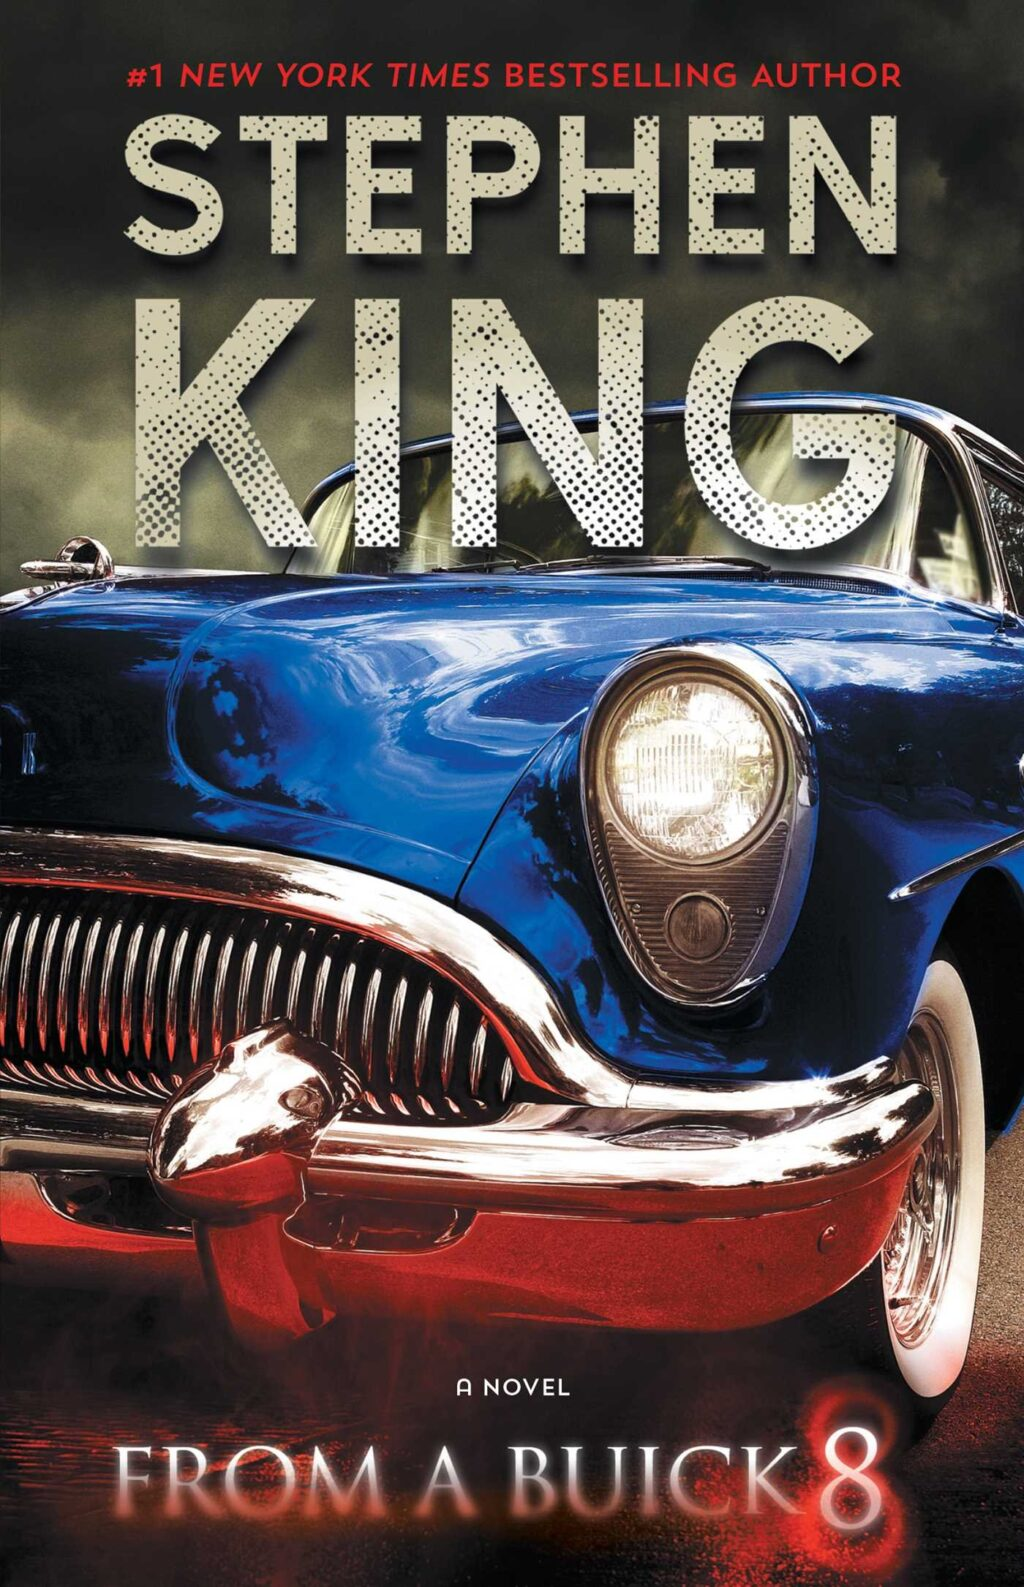 From a Buick 8 1024x1587 - Tom Jane Producing Adaptation of Stephen King's FROM A BUICK 8